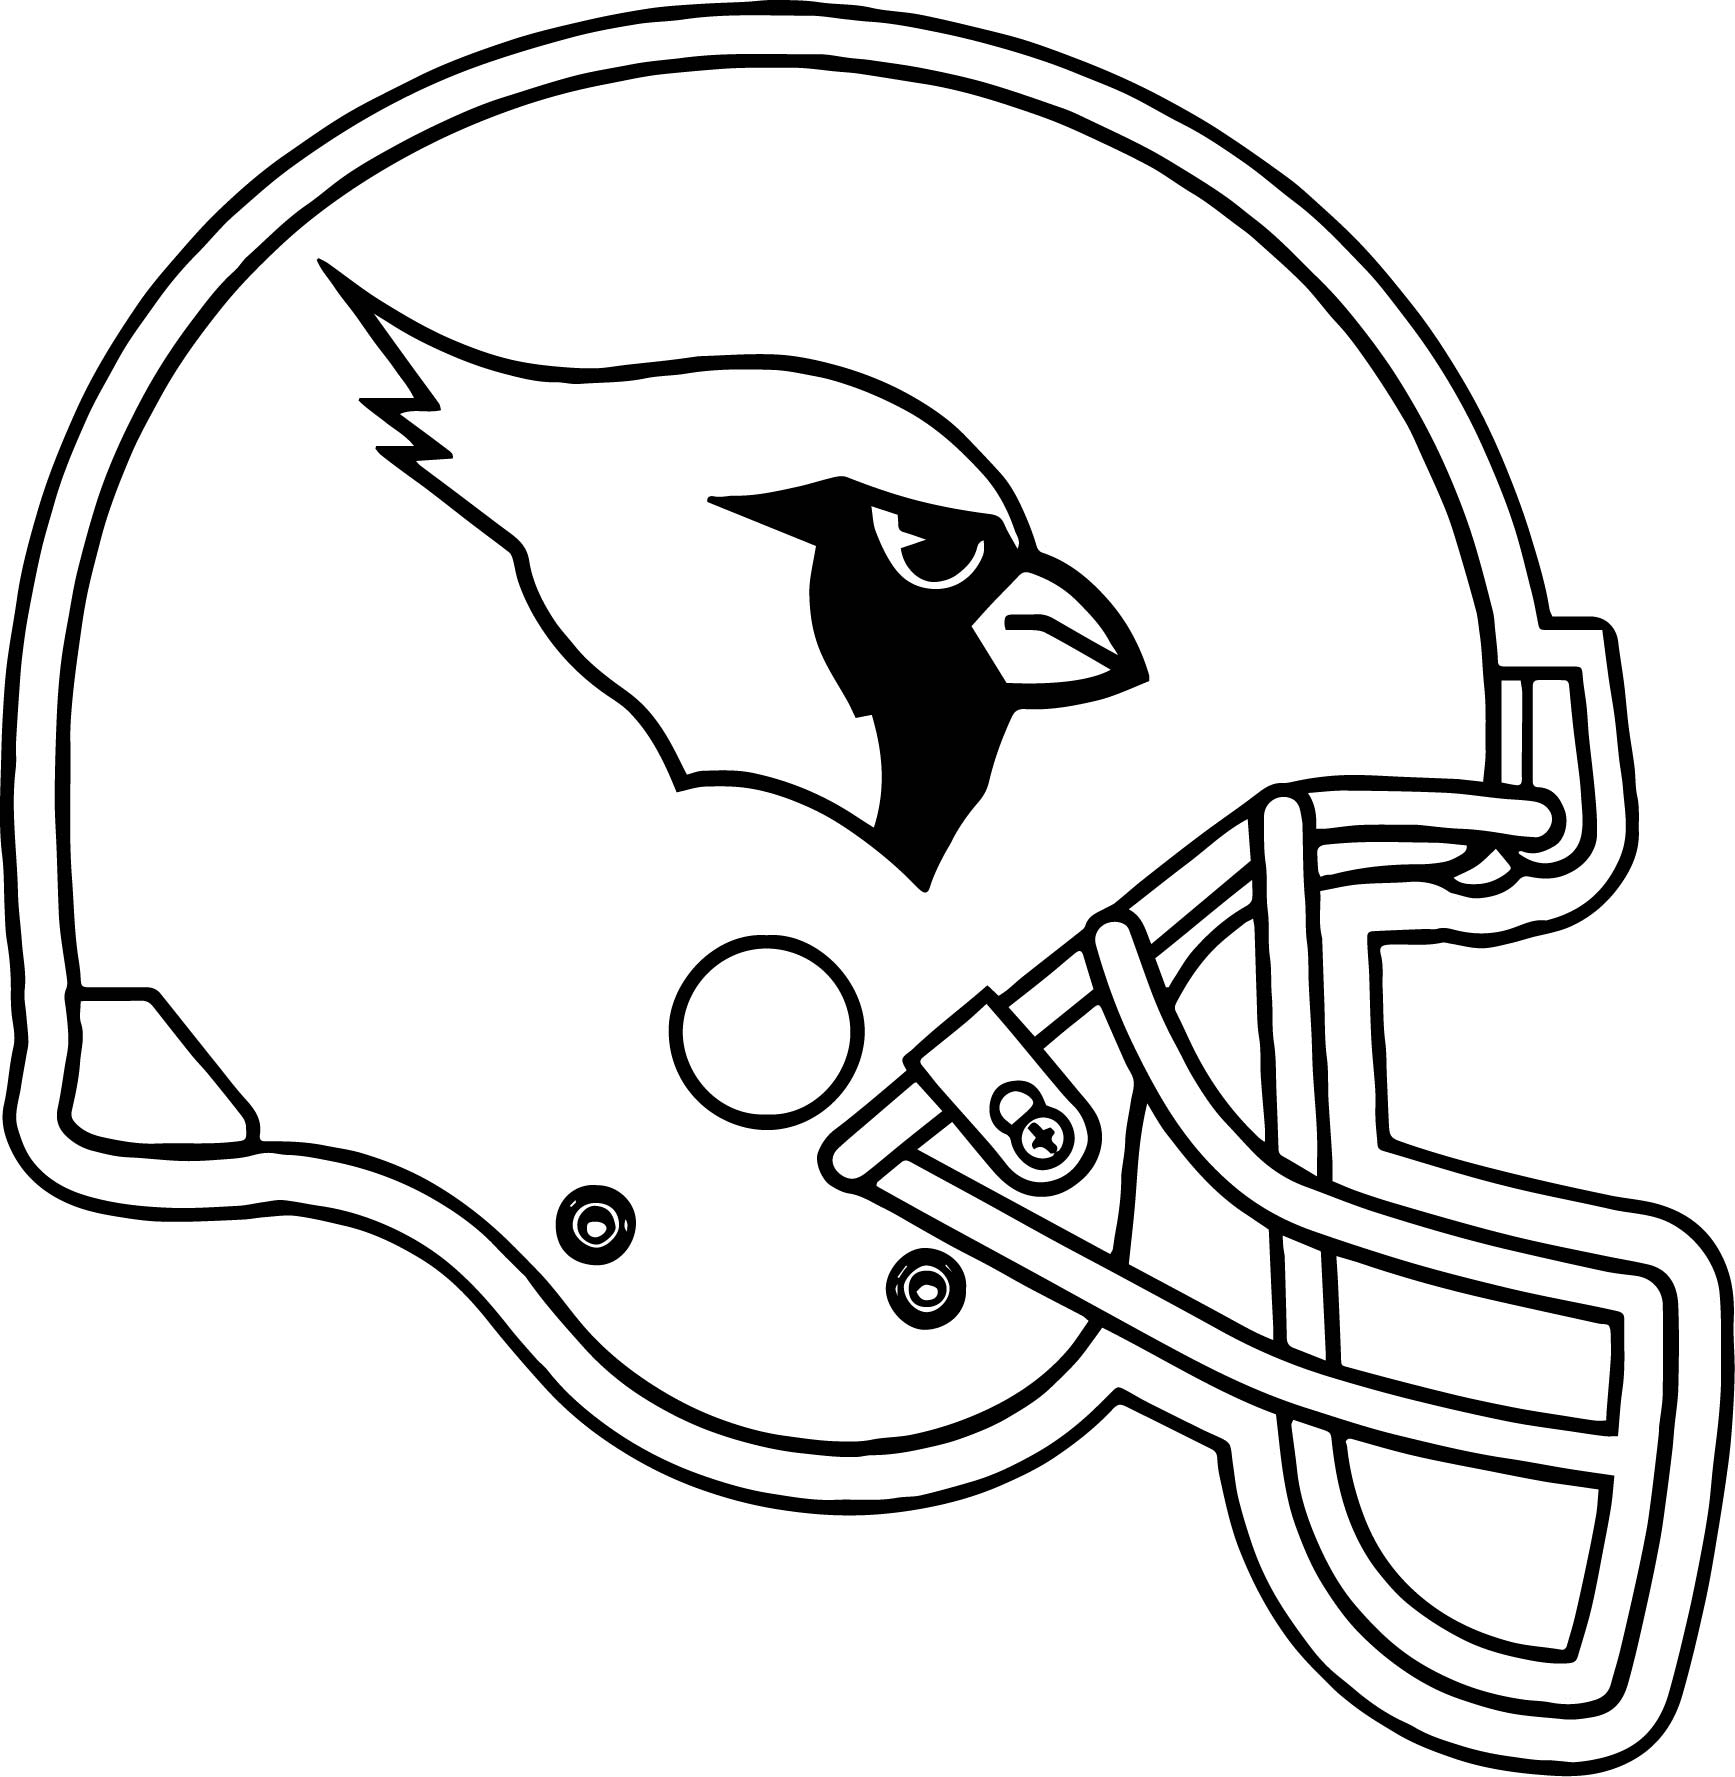 Football Helmet Coloring Pages - Arizona Cardinals